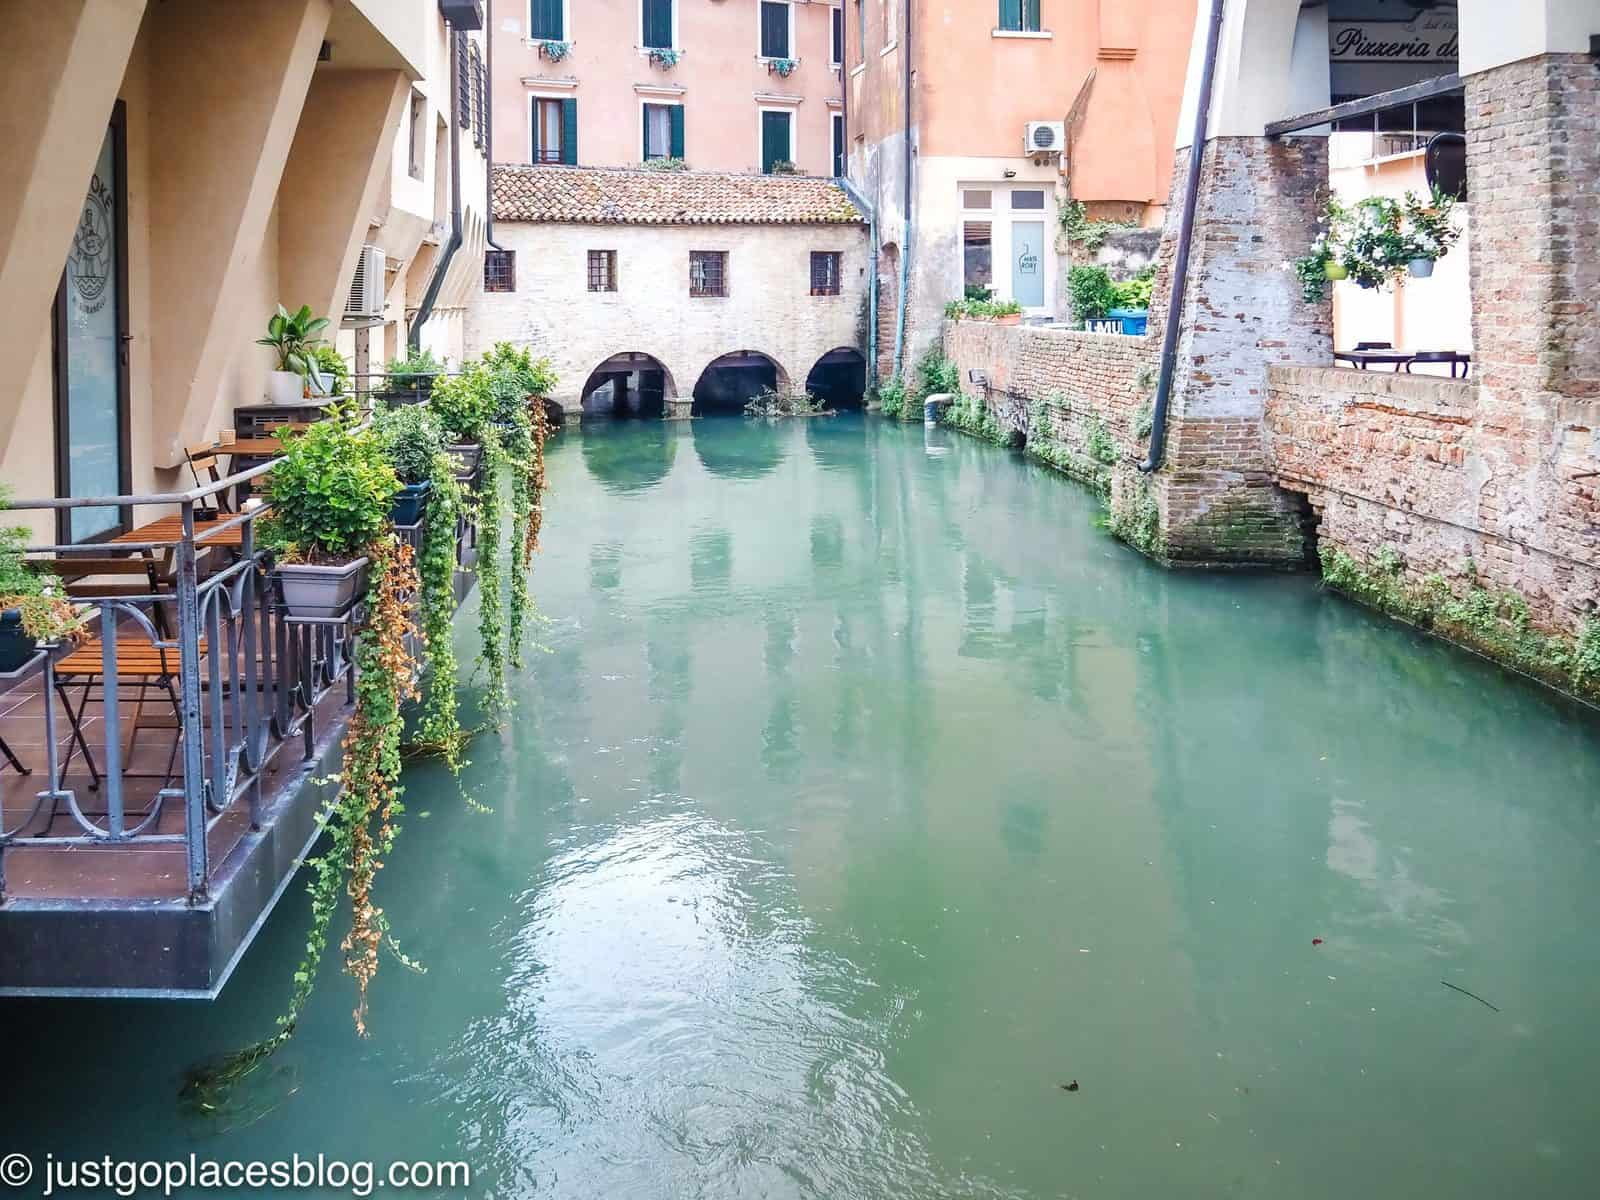 Treviso restaurant on a canal